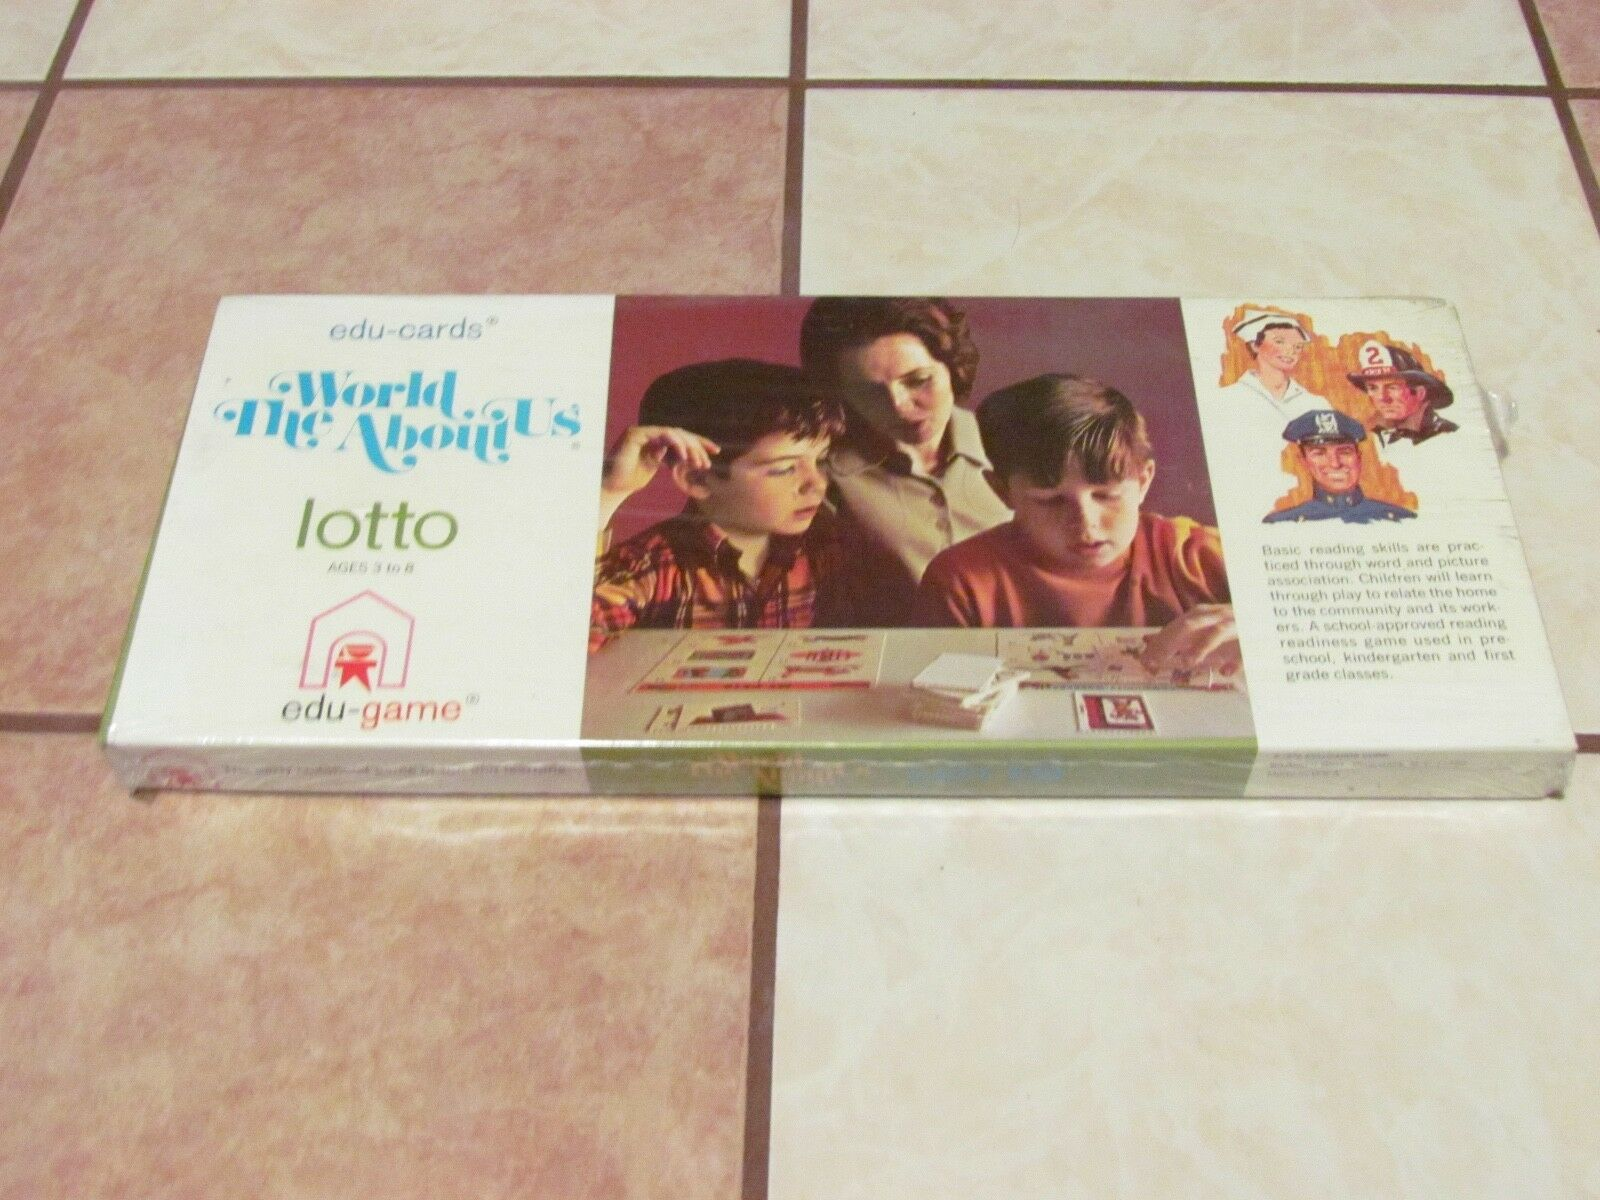 NEW SEALED EDU-CARDS WORLD ABOUT US LOTTO 1970 EDU-GAME RARE VINTAGE LEARNING